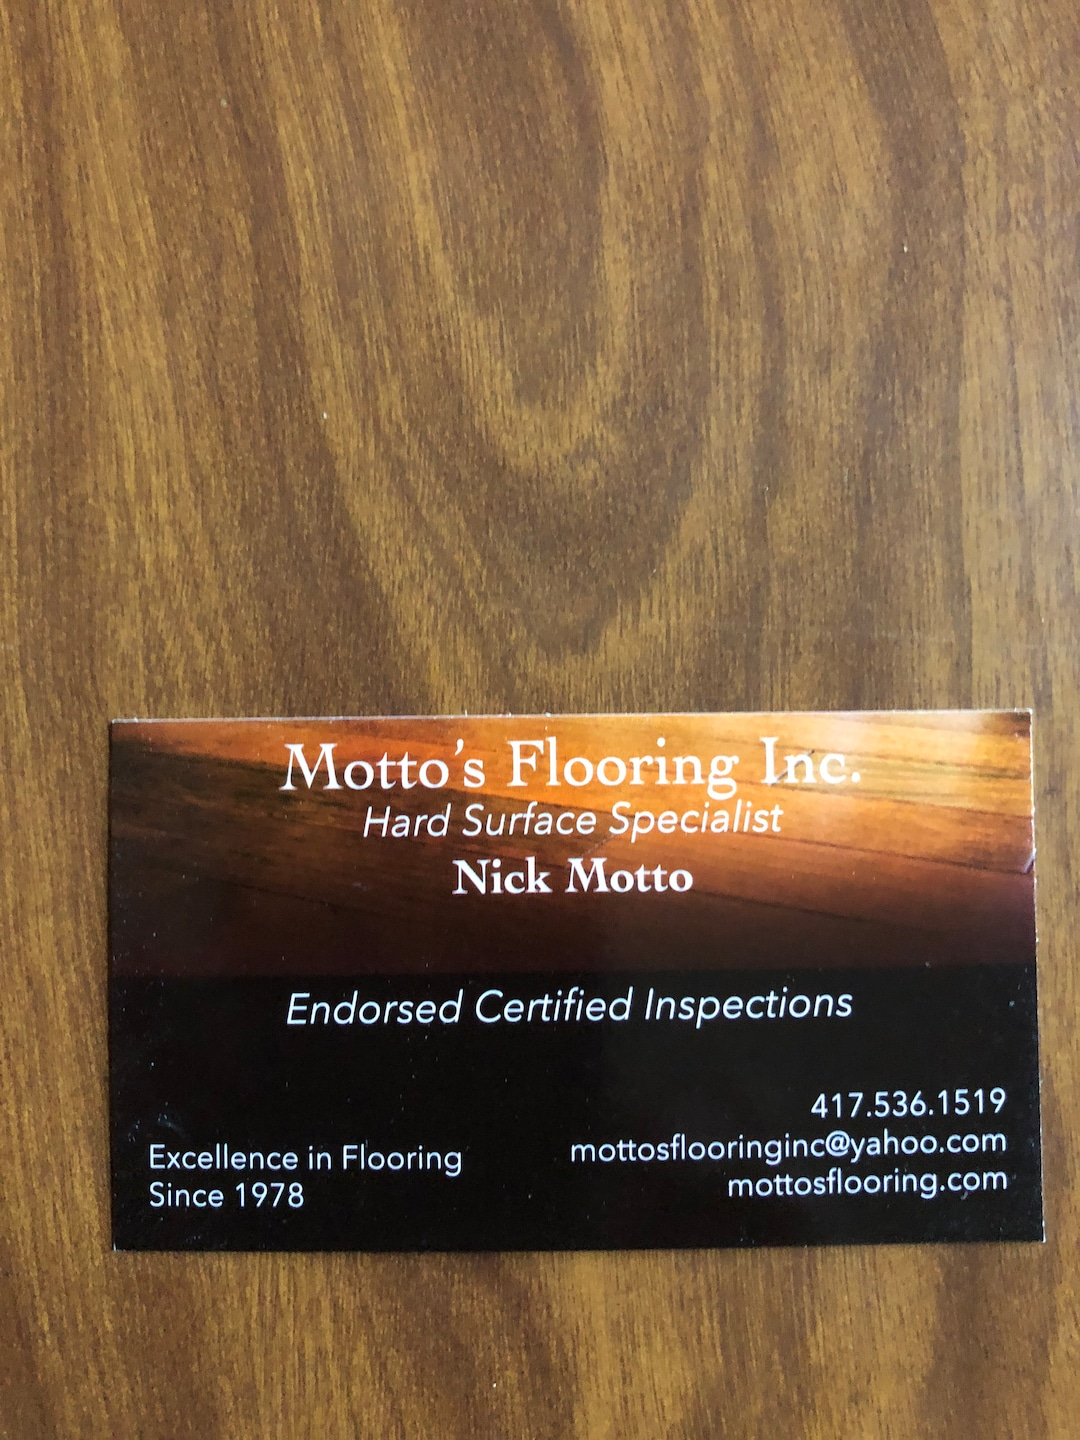 Motto's Flooring